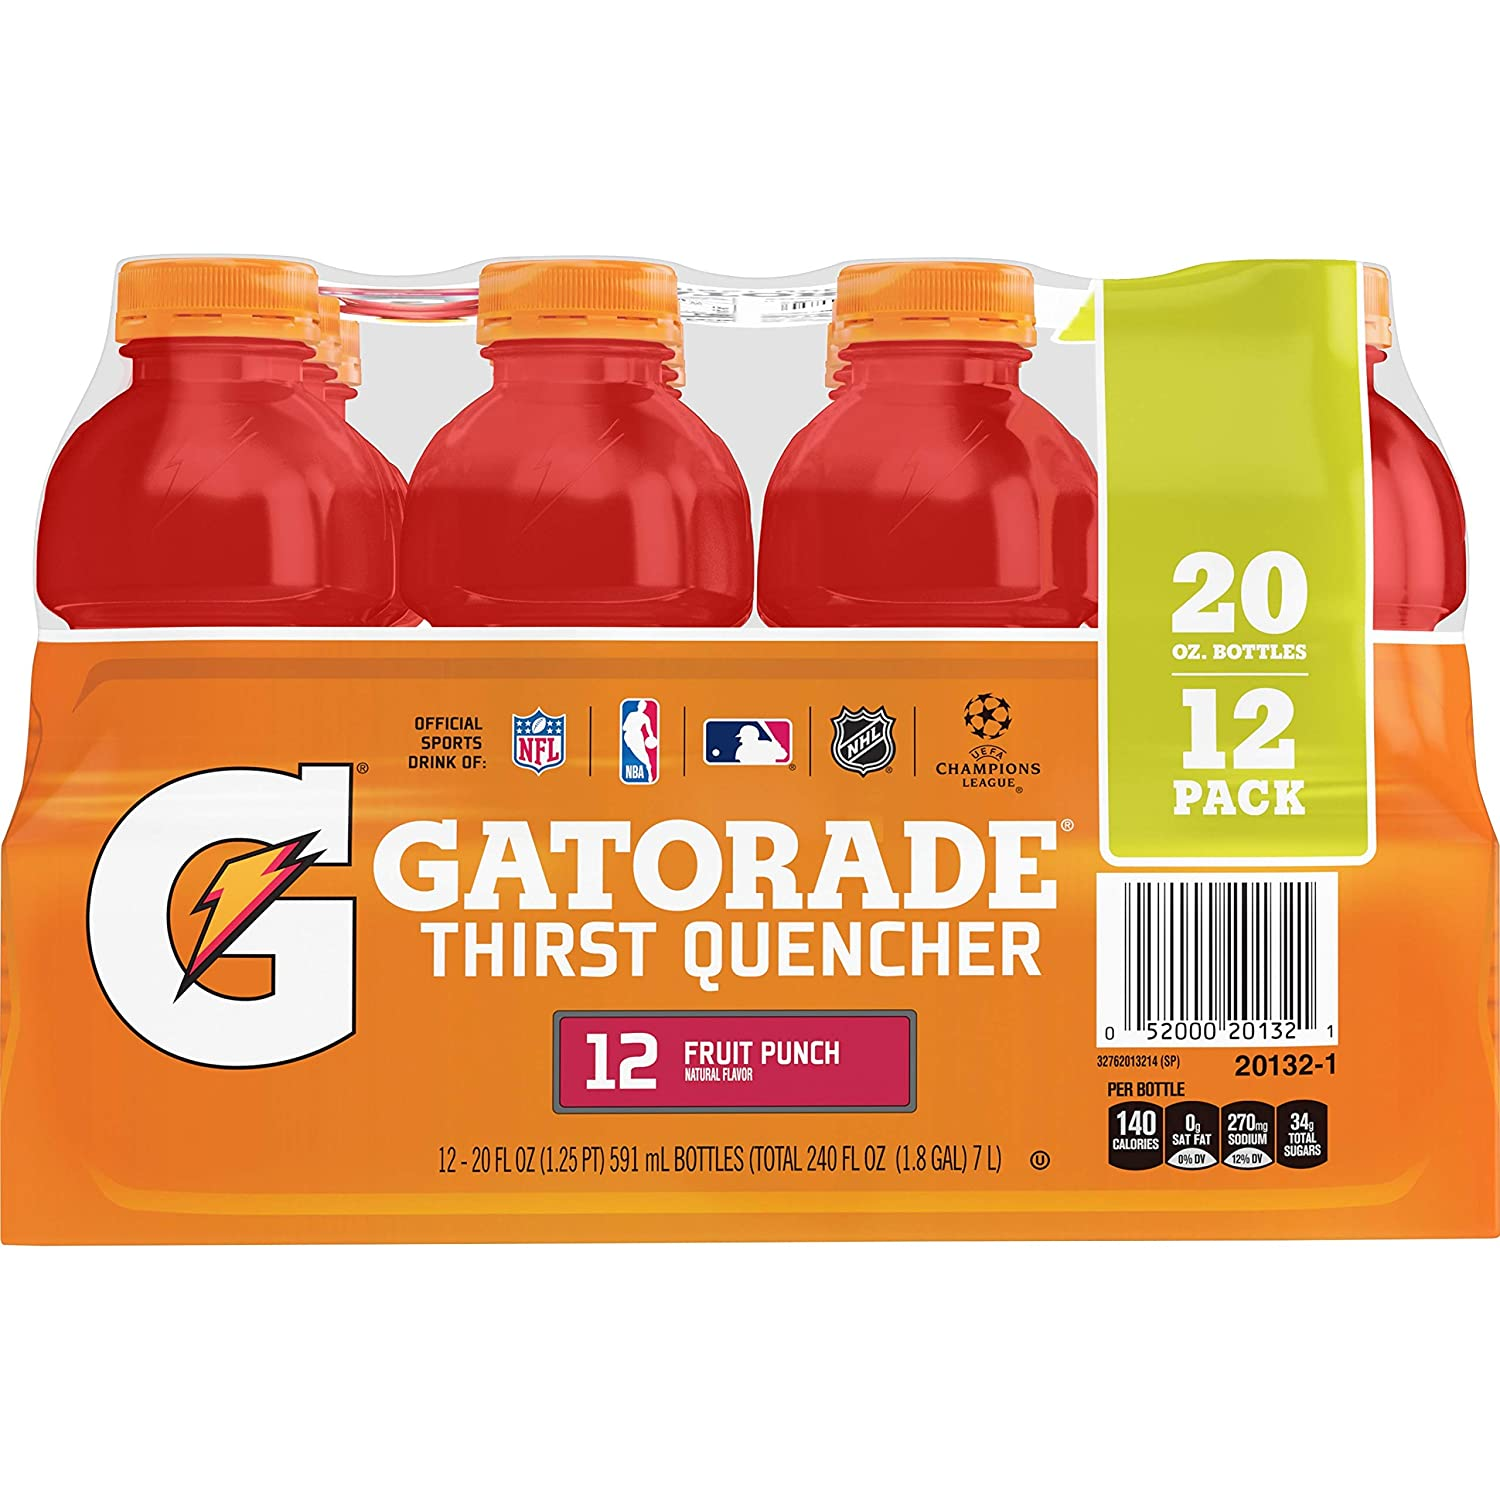 Gatorade Thirst Quencher, Fruit Punch, 20 Ounce Bottles (Pack of 12)